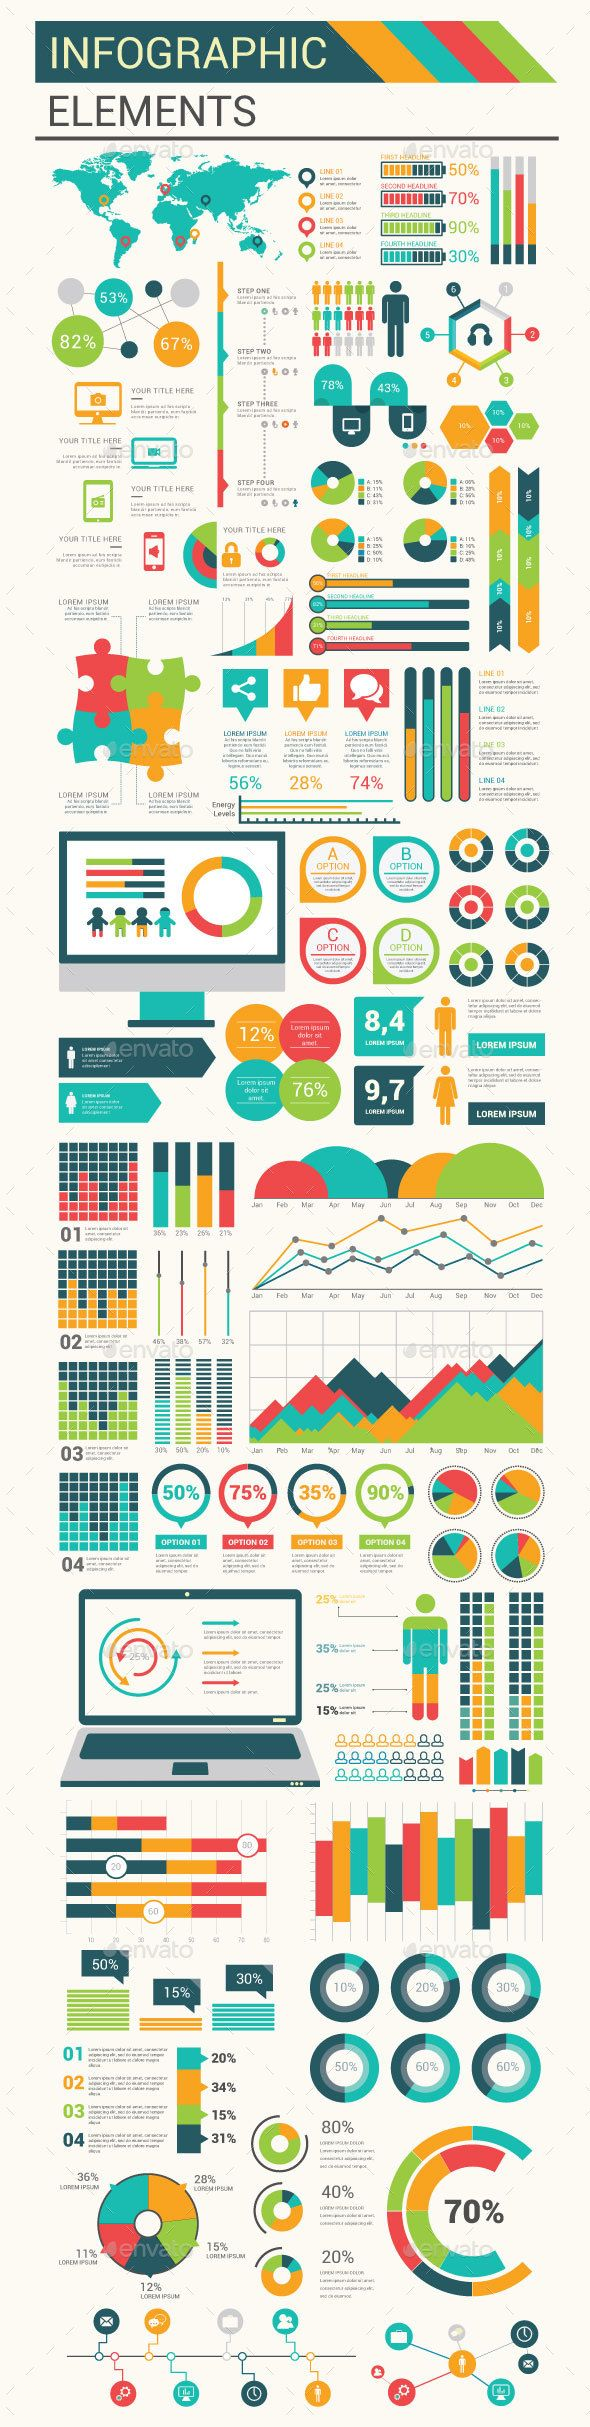 Infographic Flat Elements Template Vector EPS, AI Illustrator. Download here: http://graphicriver.net/item/infographic-flat-elements/16221447?ref=ksioks